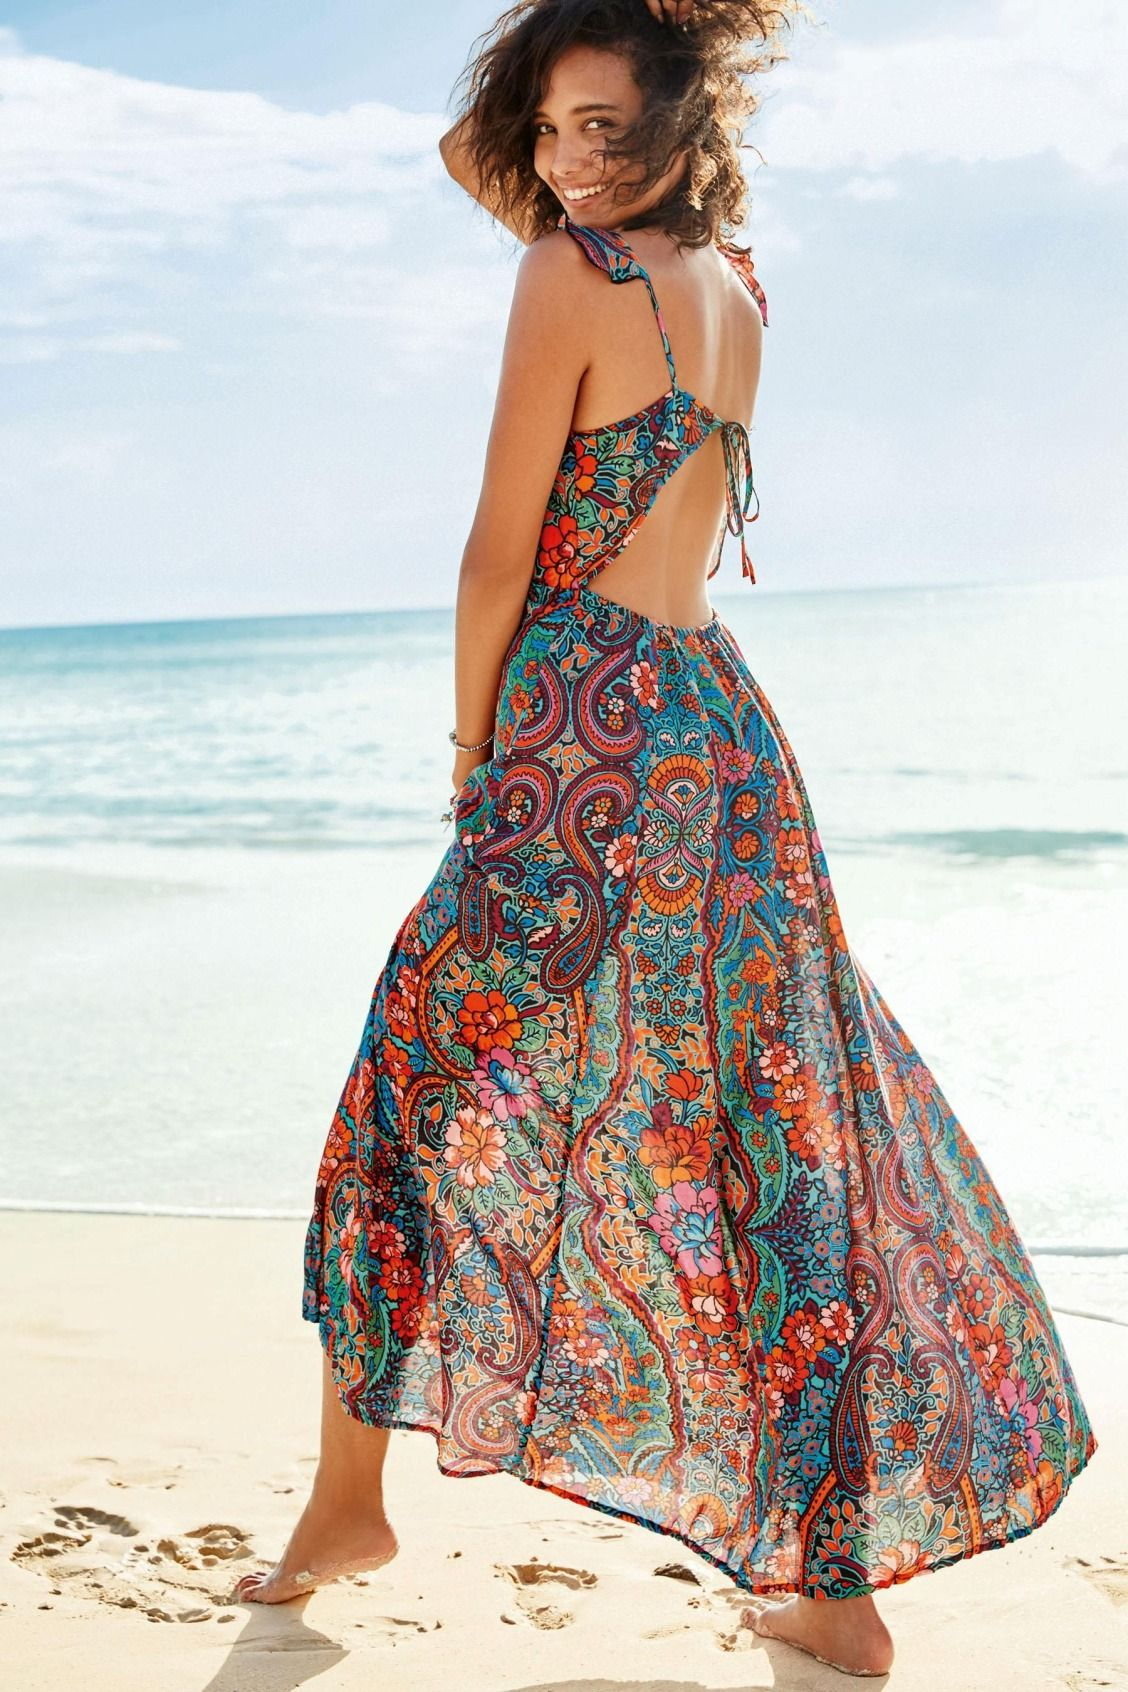 Floaty And Floral What More Do You Need In A Beach Cover Up This Maxi Could Even Be Dressed Up For A Gorg Fashion Casual Beach Dress Party Dresses For Women